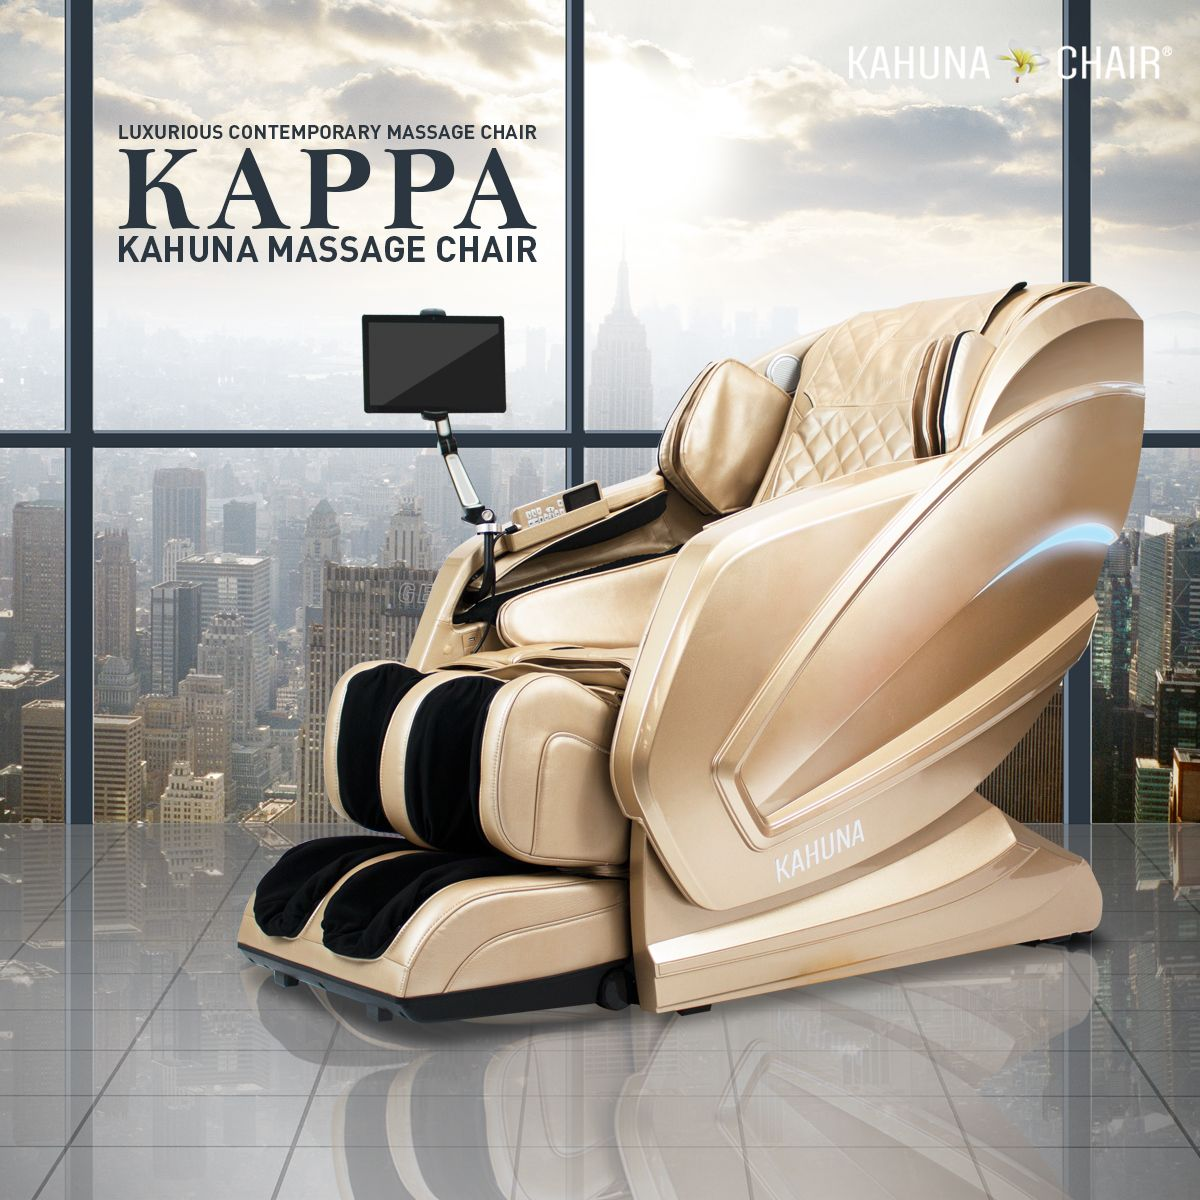 Best Massage Chair In The World Hm Exquisite Rhythmic Hsl Track Kahuna Massage Chair Hm Kappa